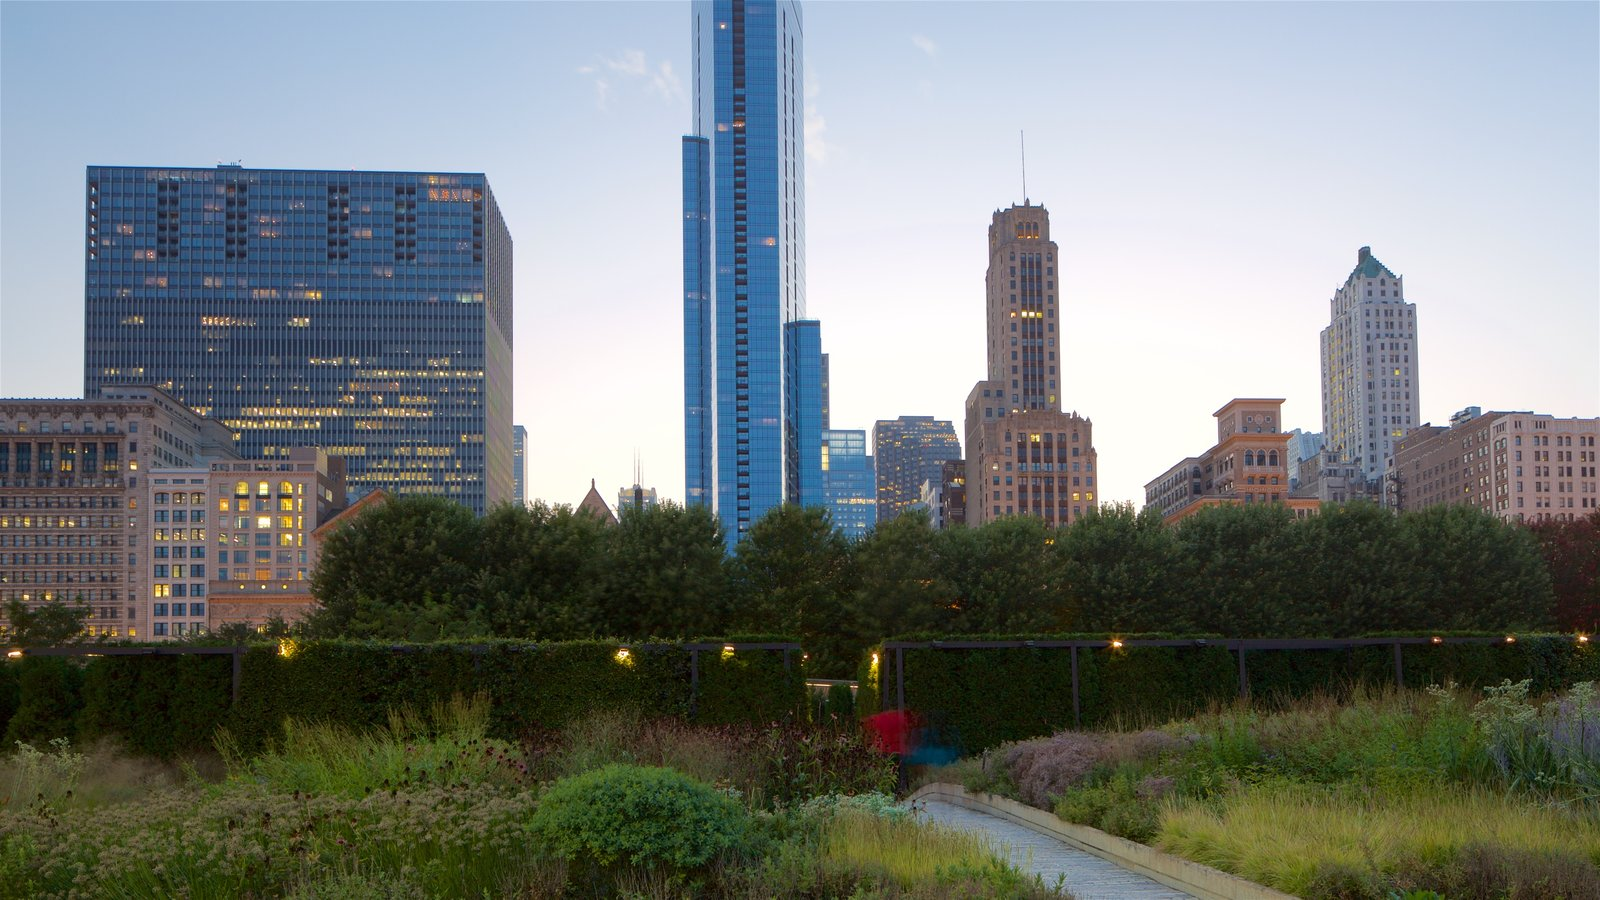 Millennium Park featuring central business district, a city and a high rise building